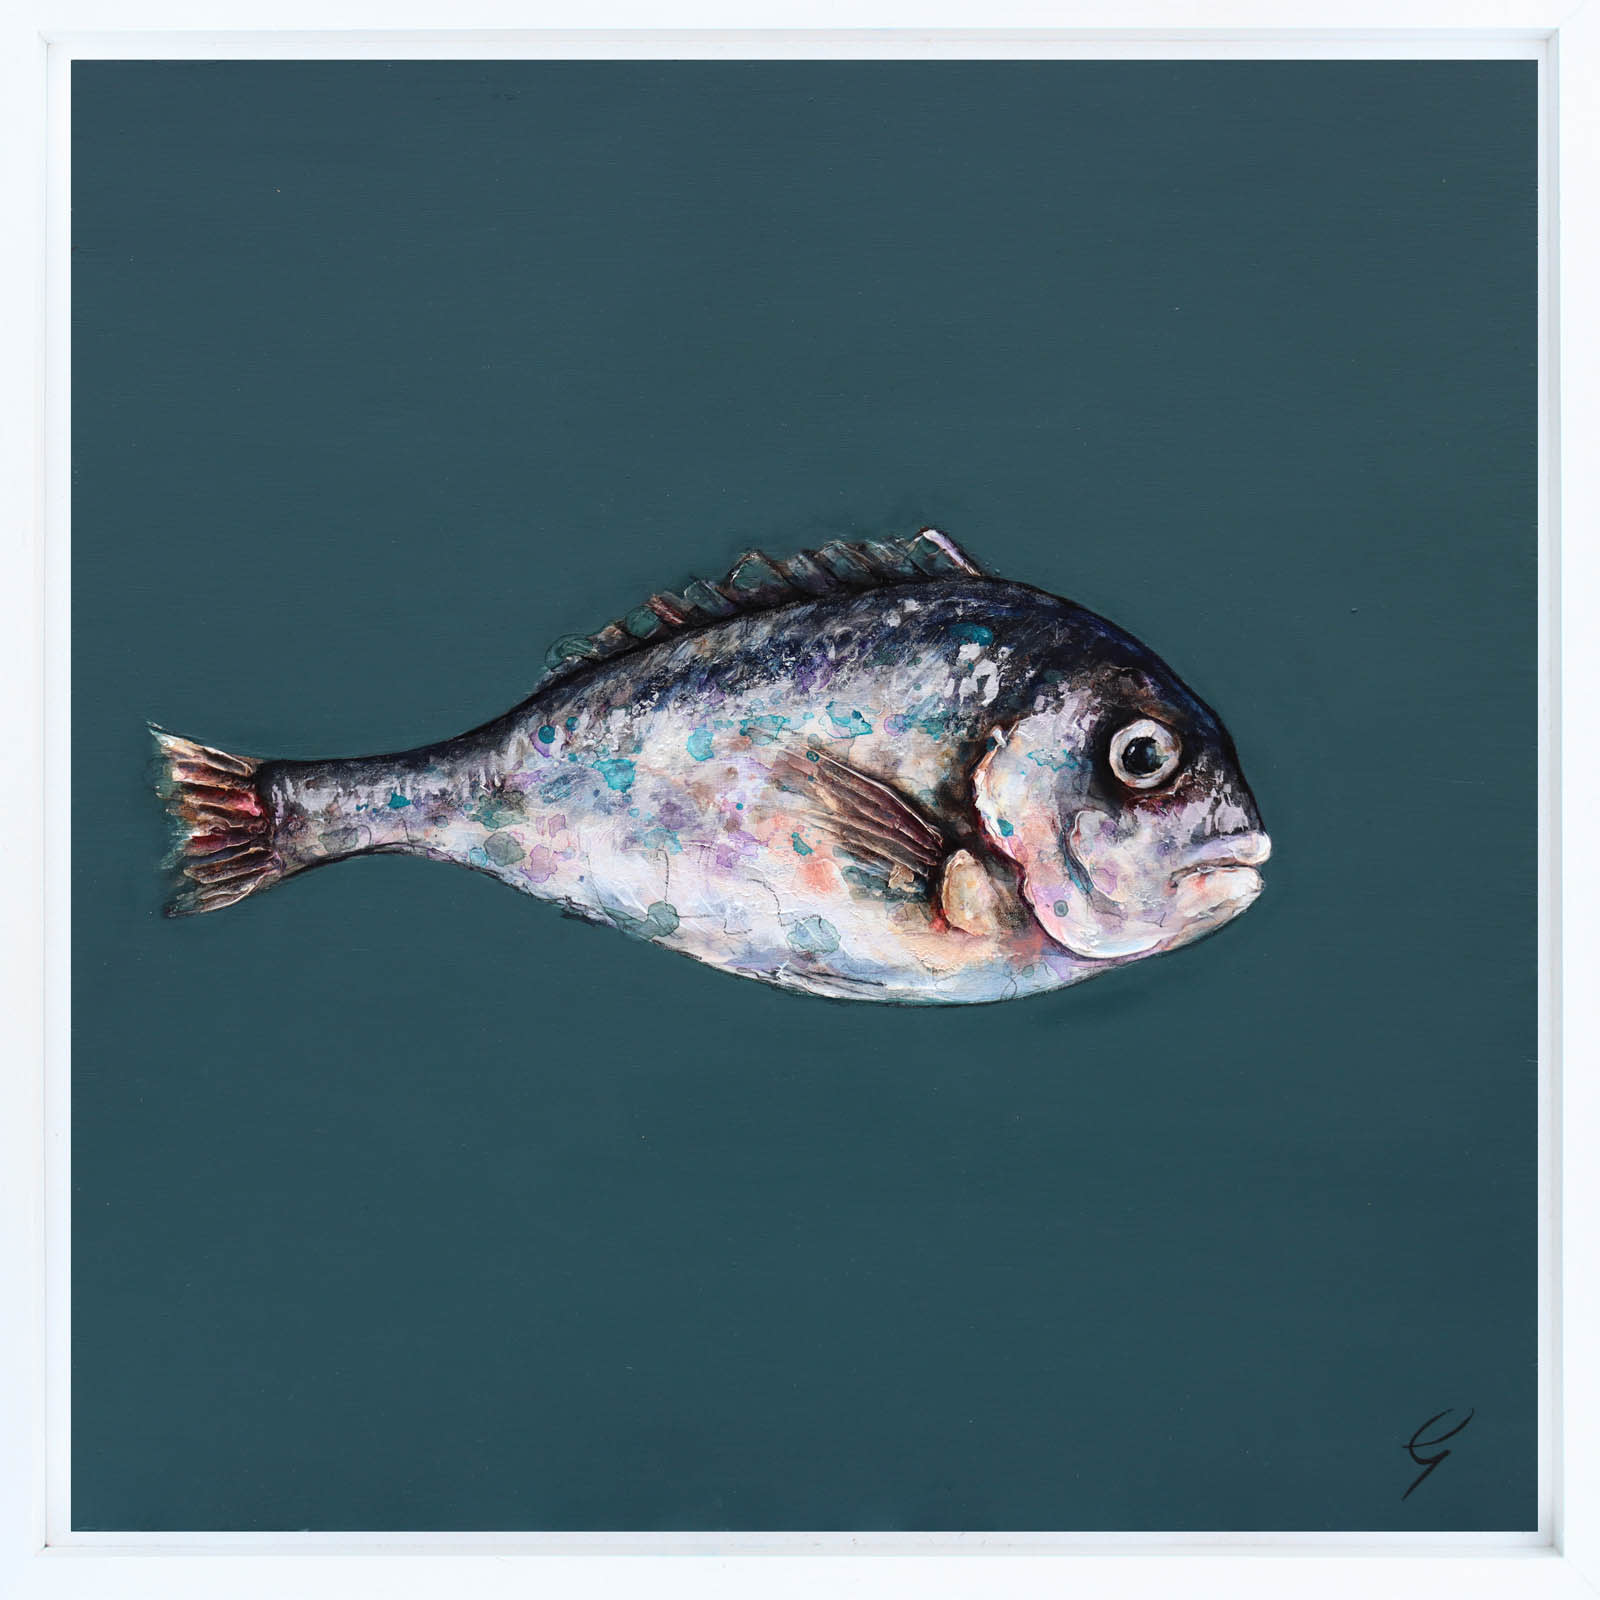 One Grey Sea Bream